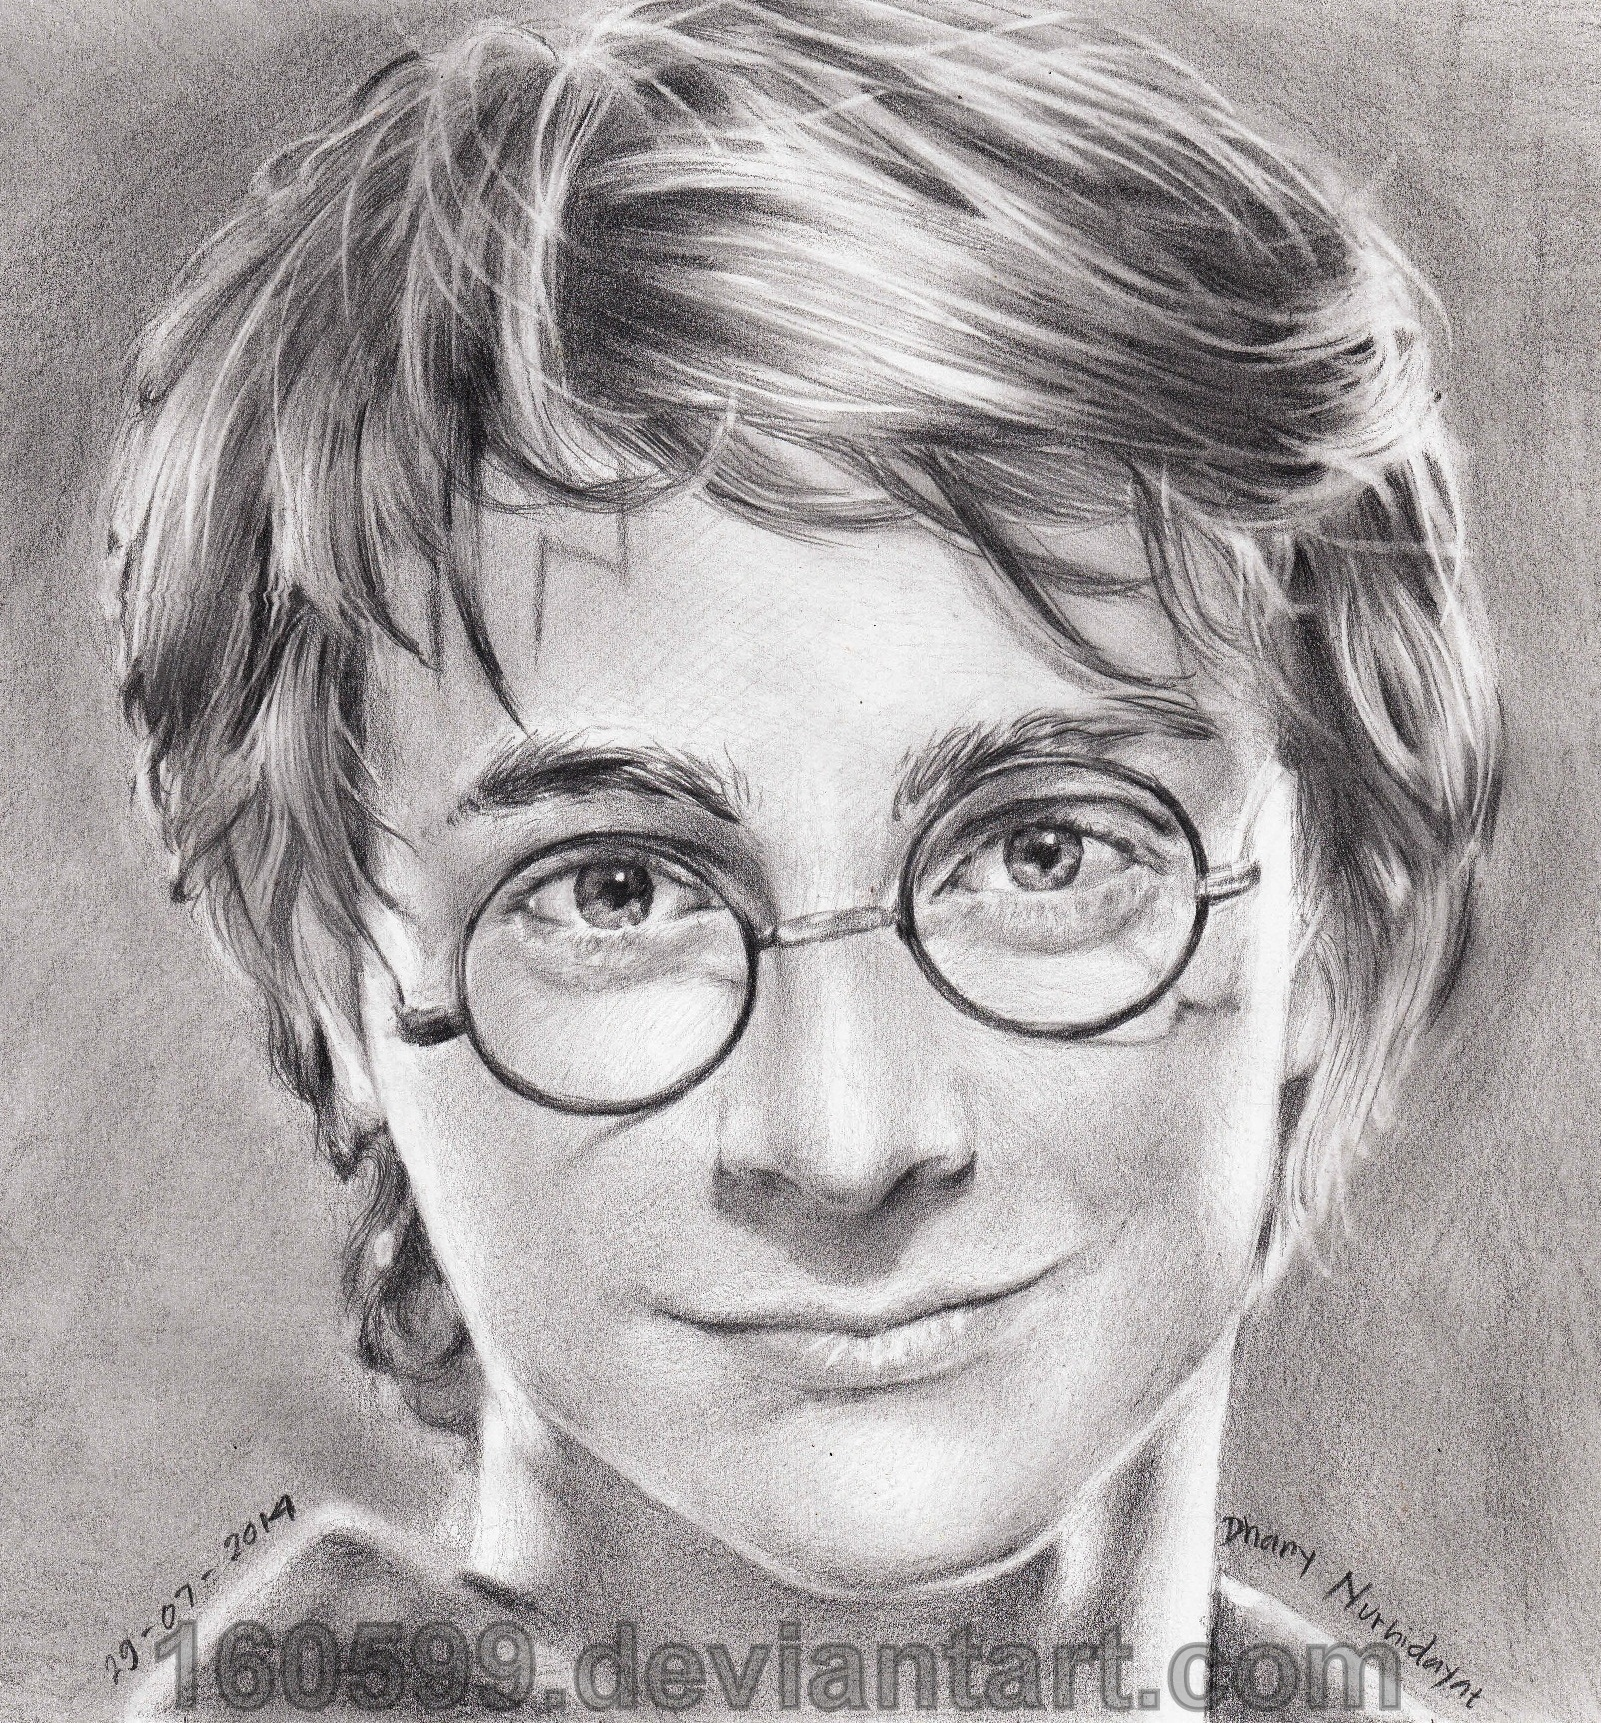 Harry Potter Drawing By 160599 On DeviantArt